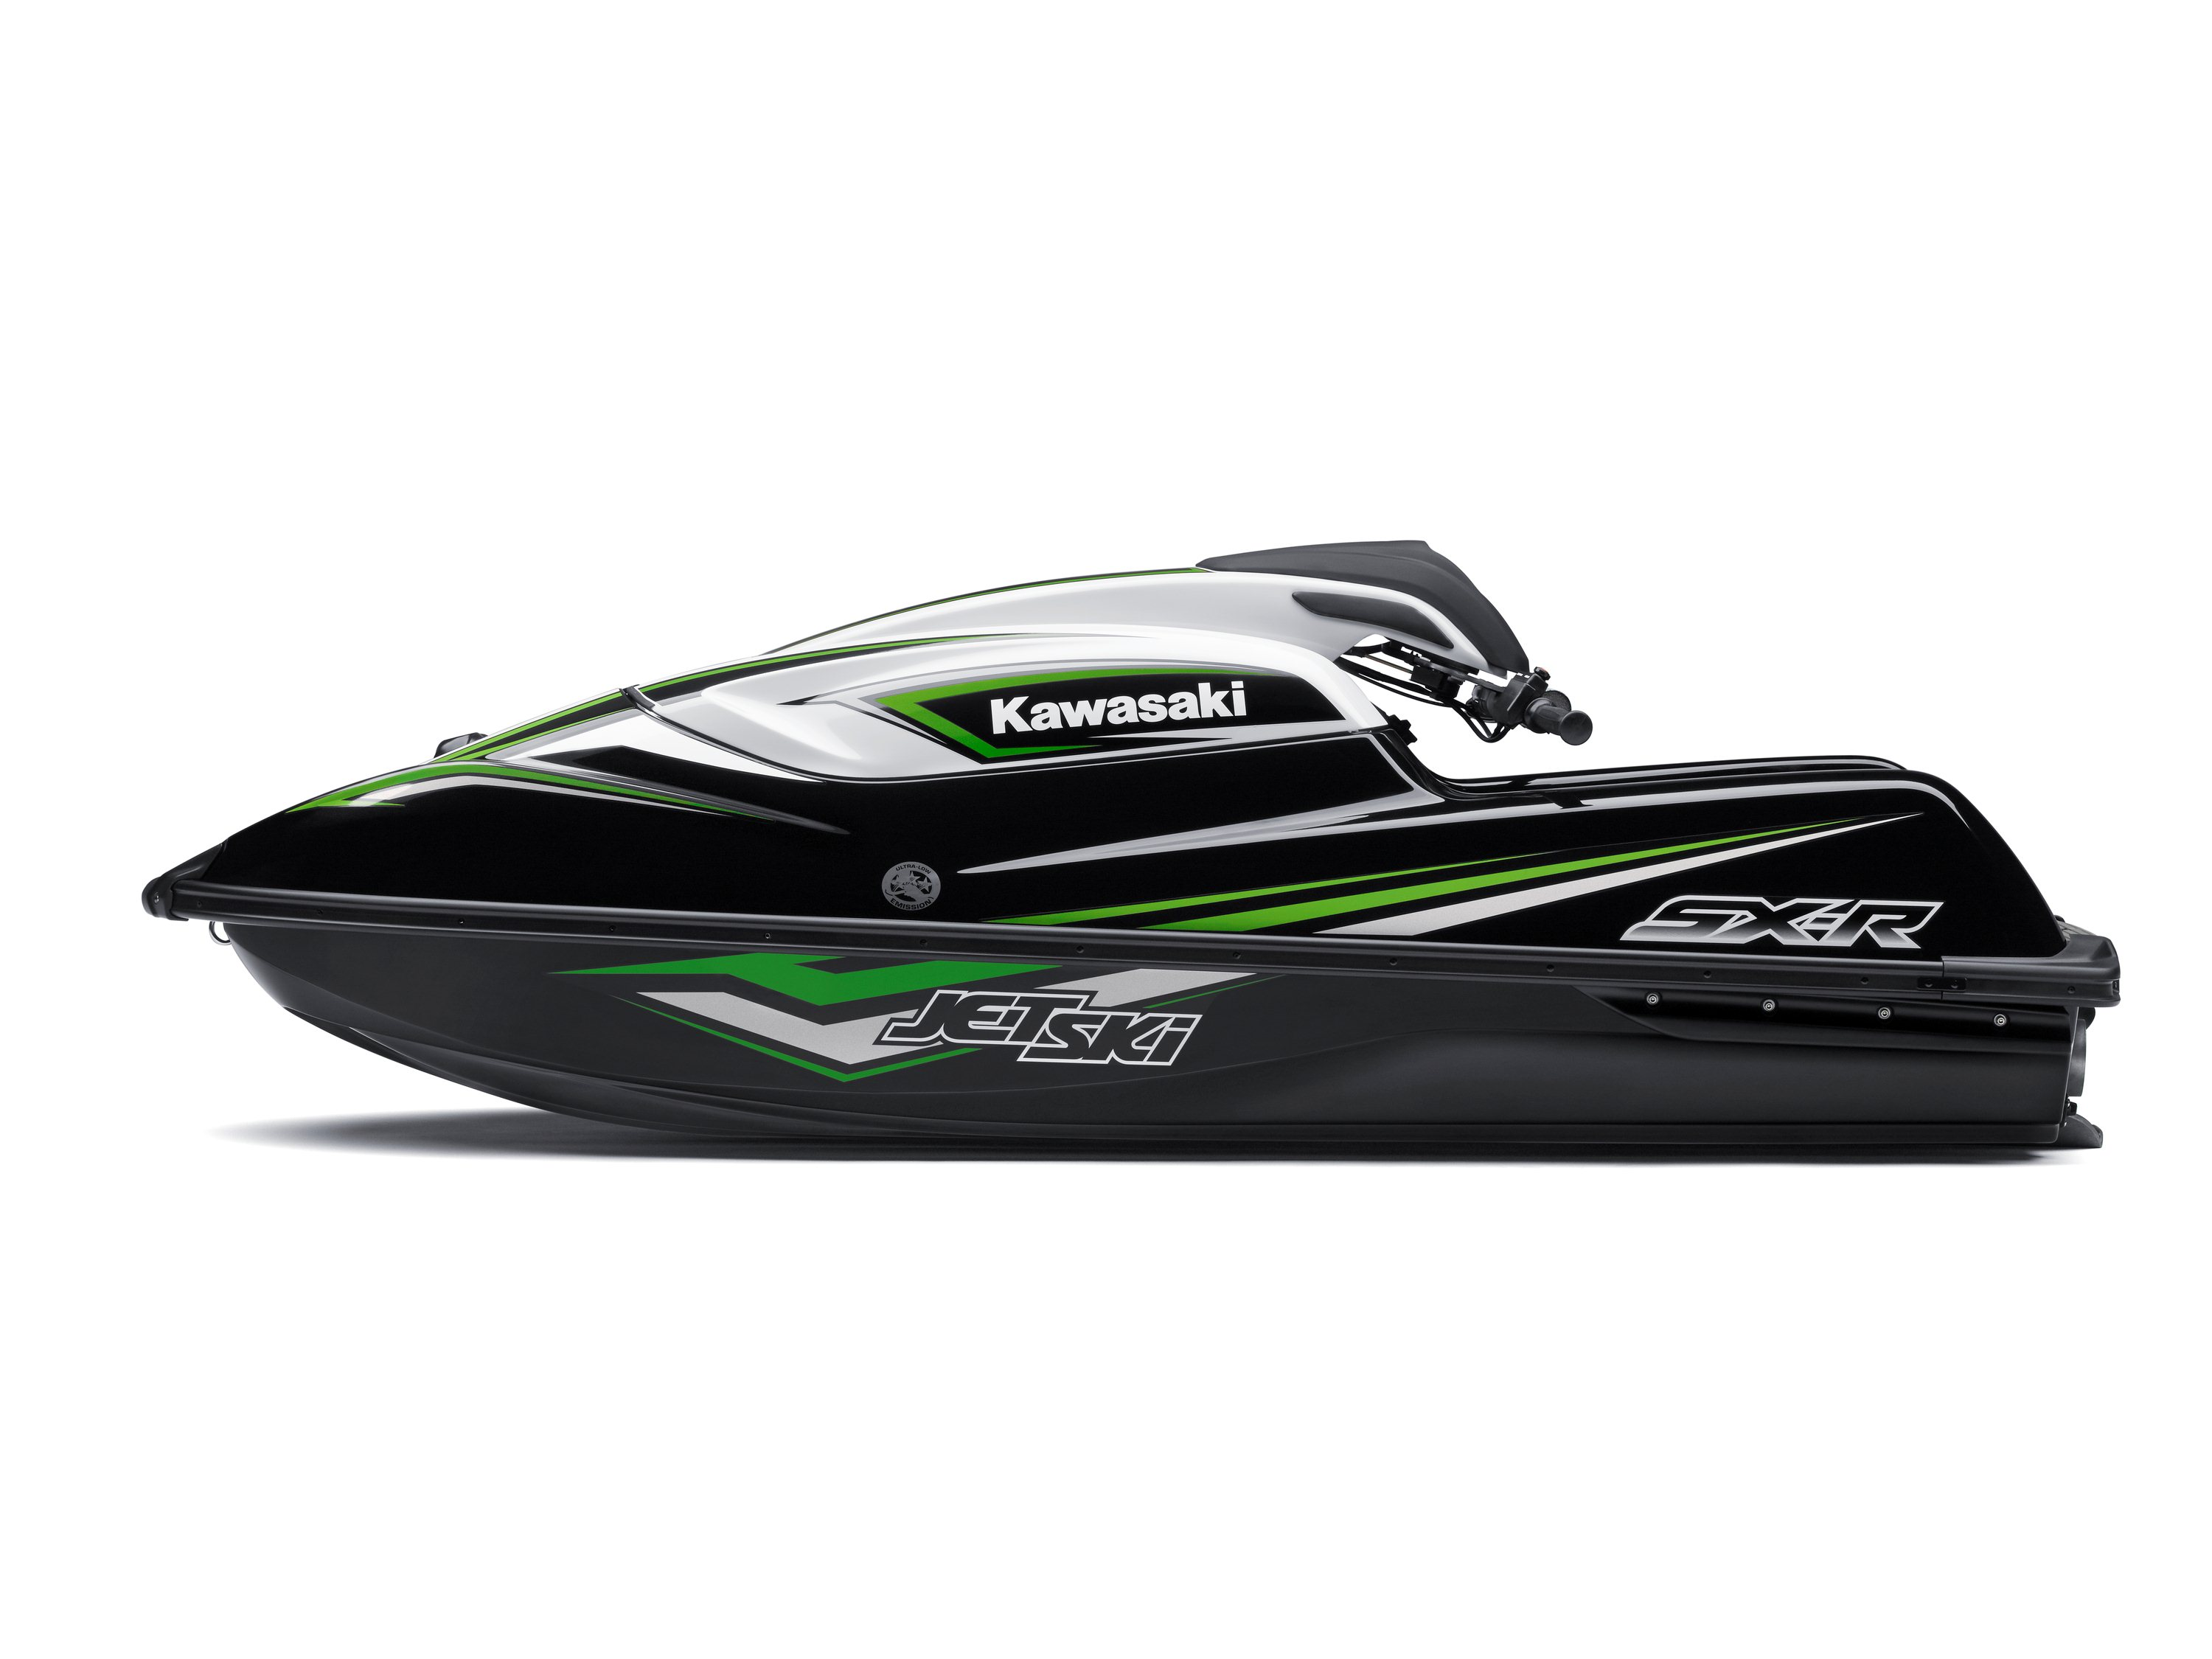 Rider Review of New Kawasaki SX-R1500 | Pro Rider Watercraft Magazine